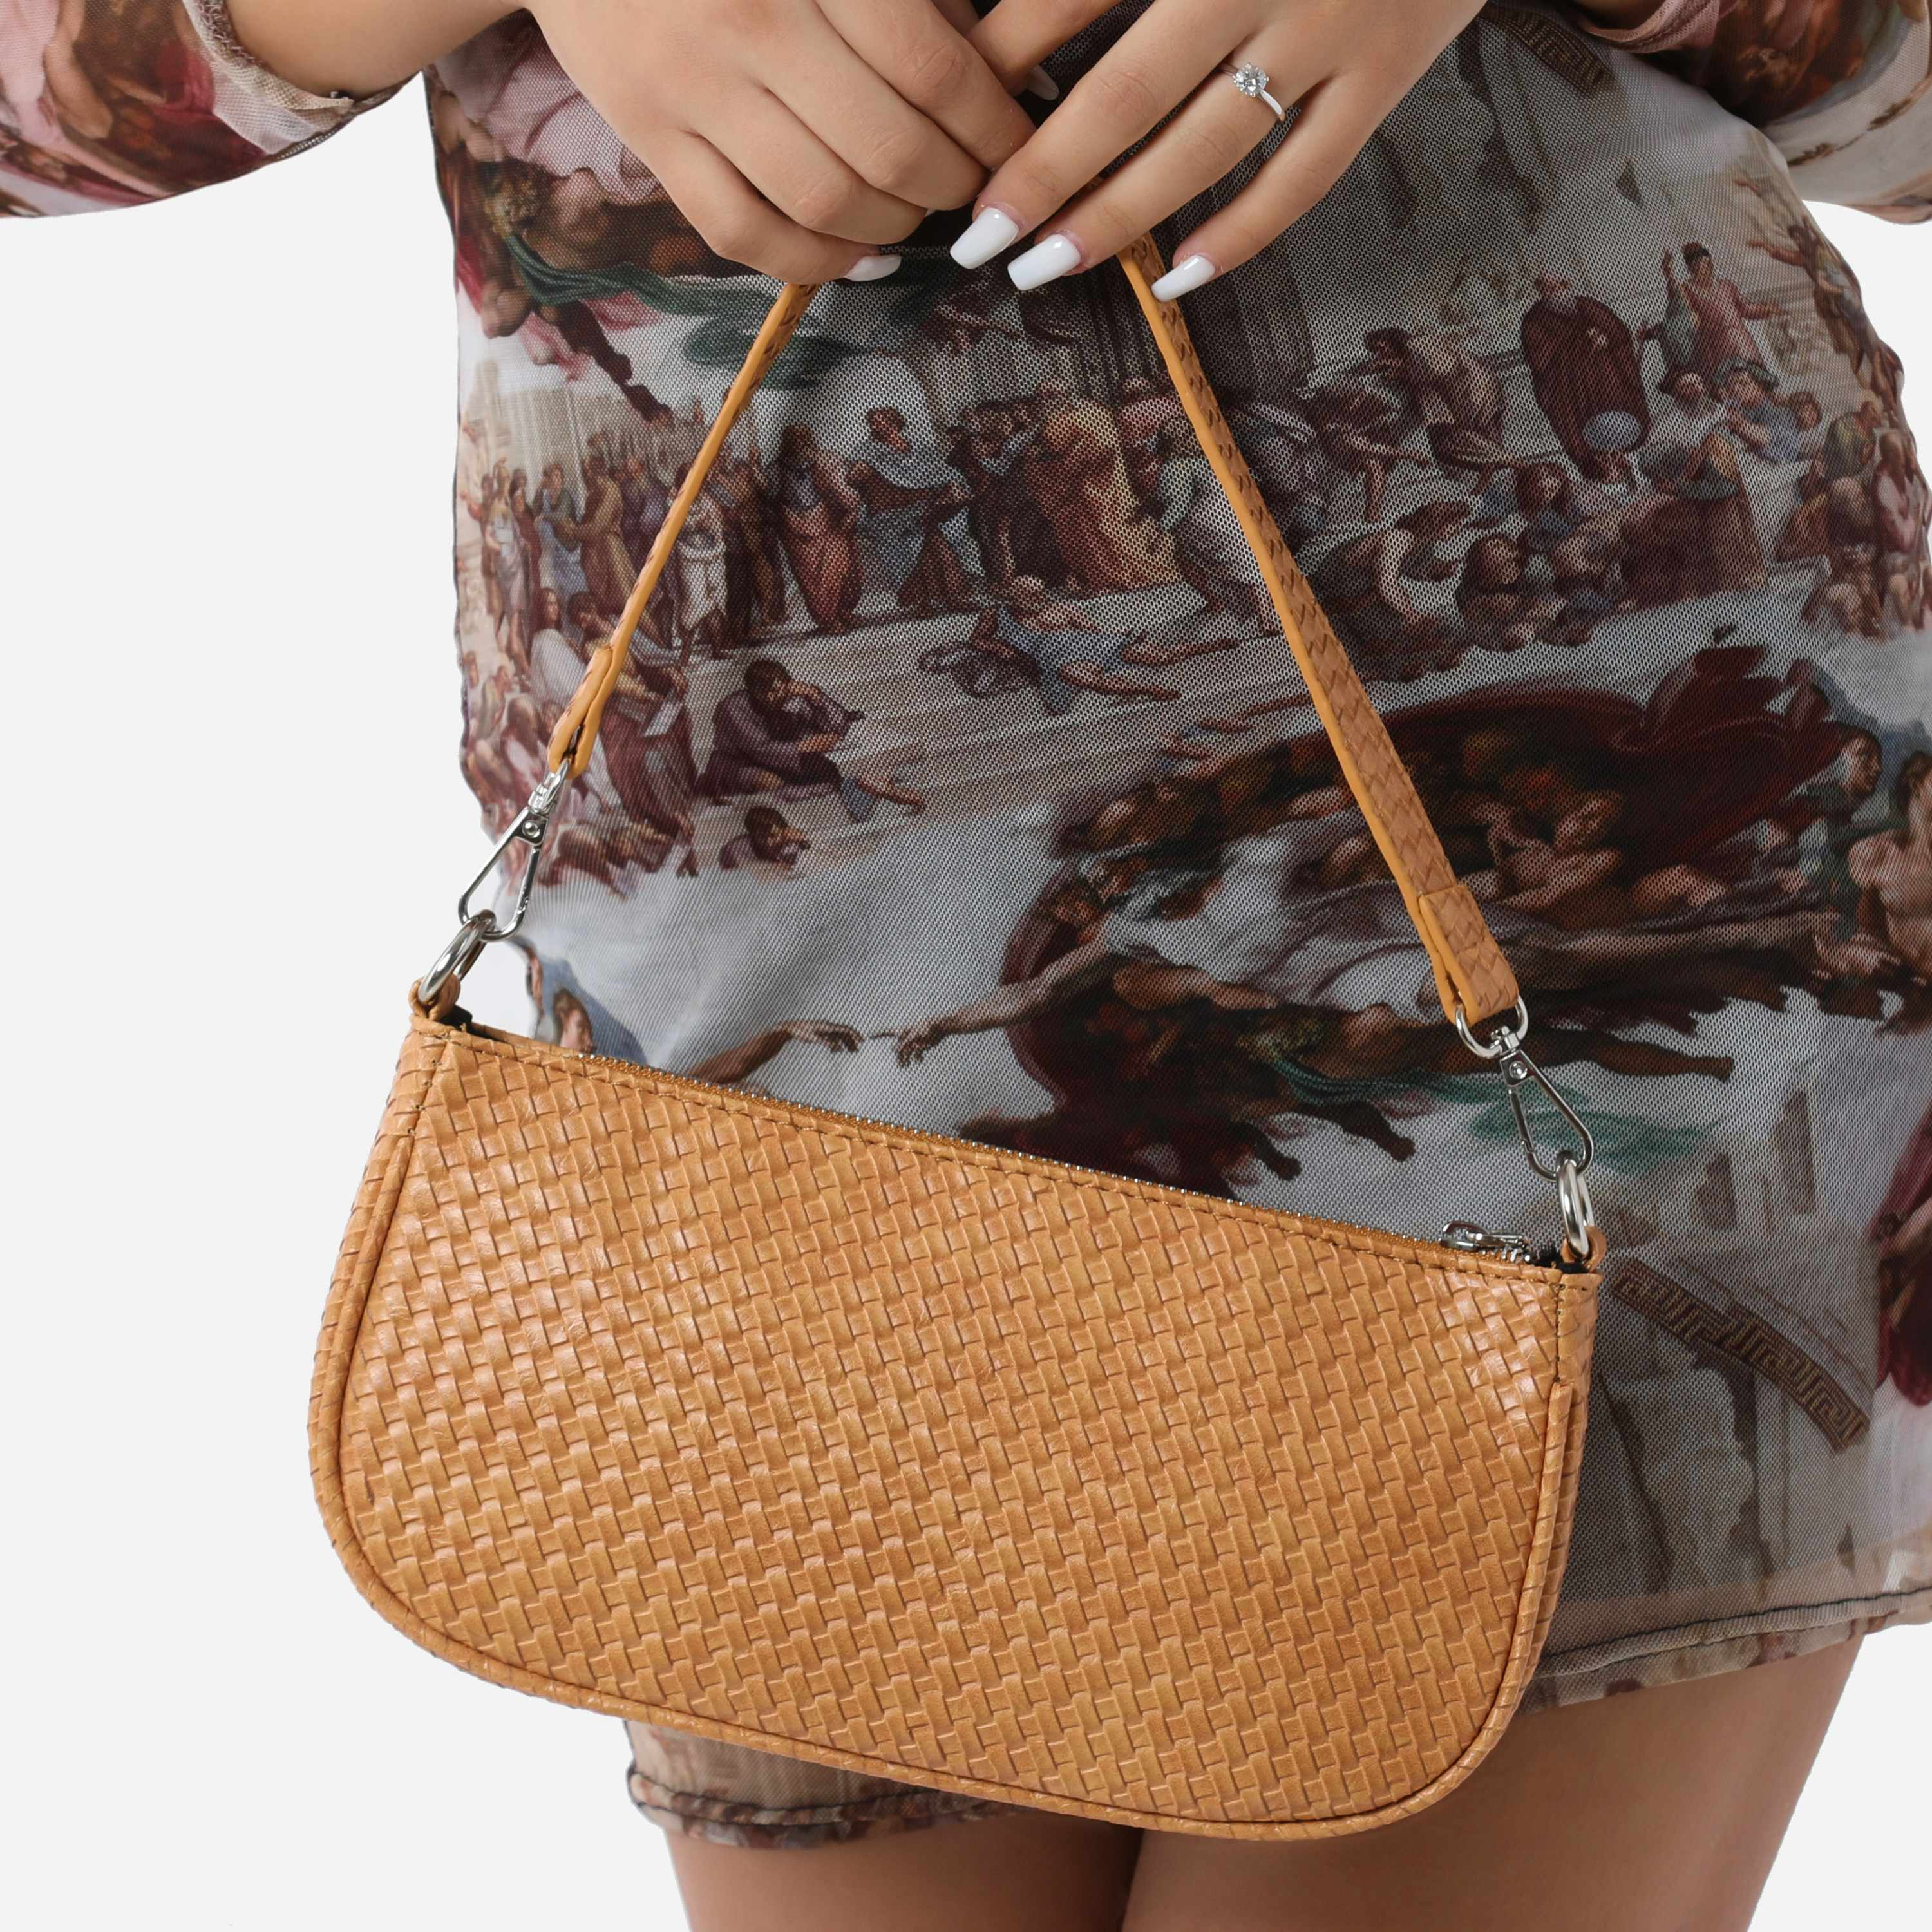 Woven Baguette Shoulder Bag In Tan Faux Leather